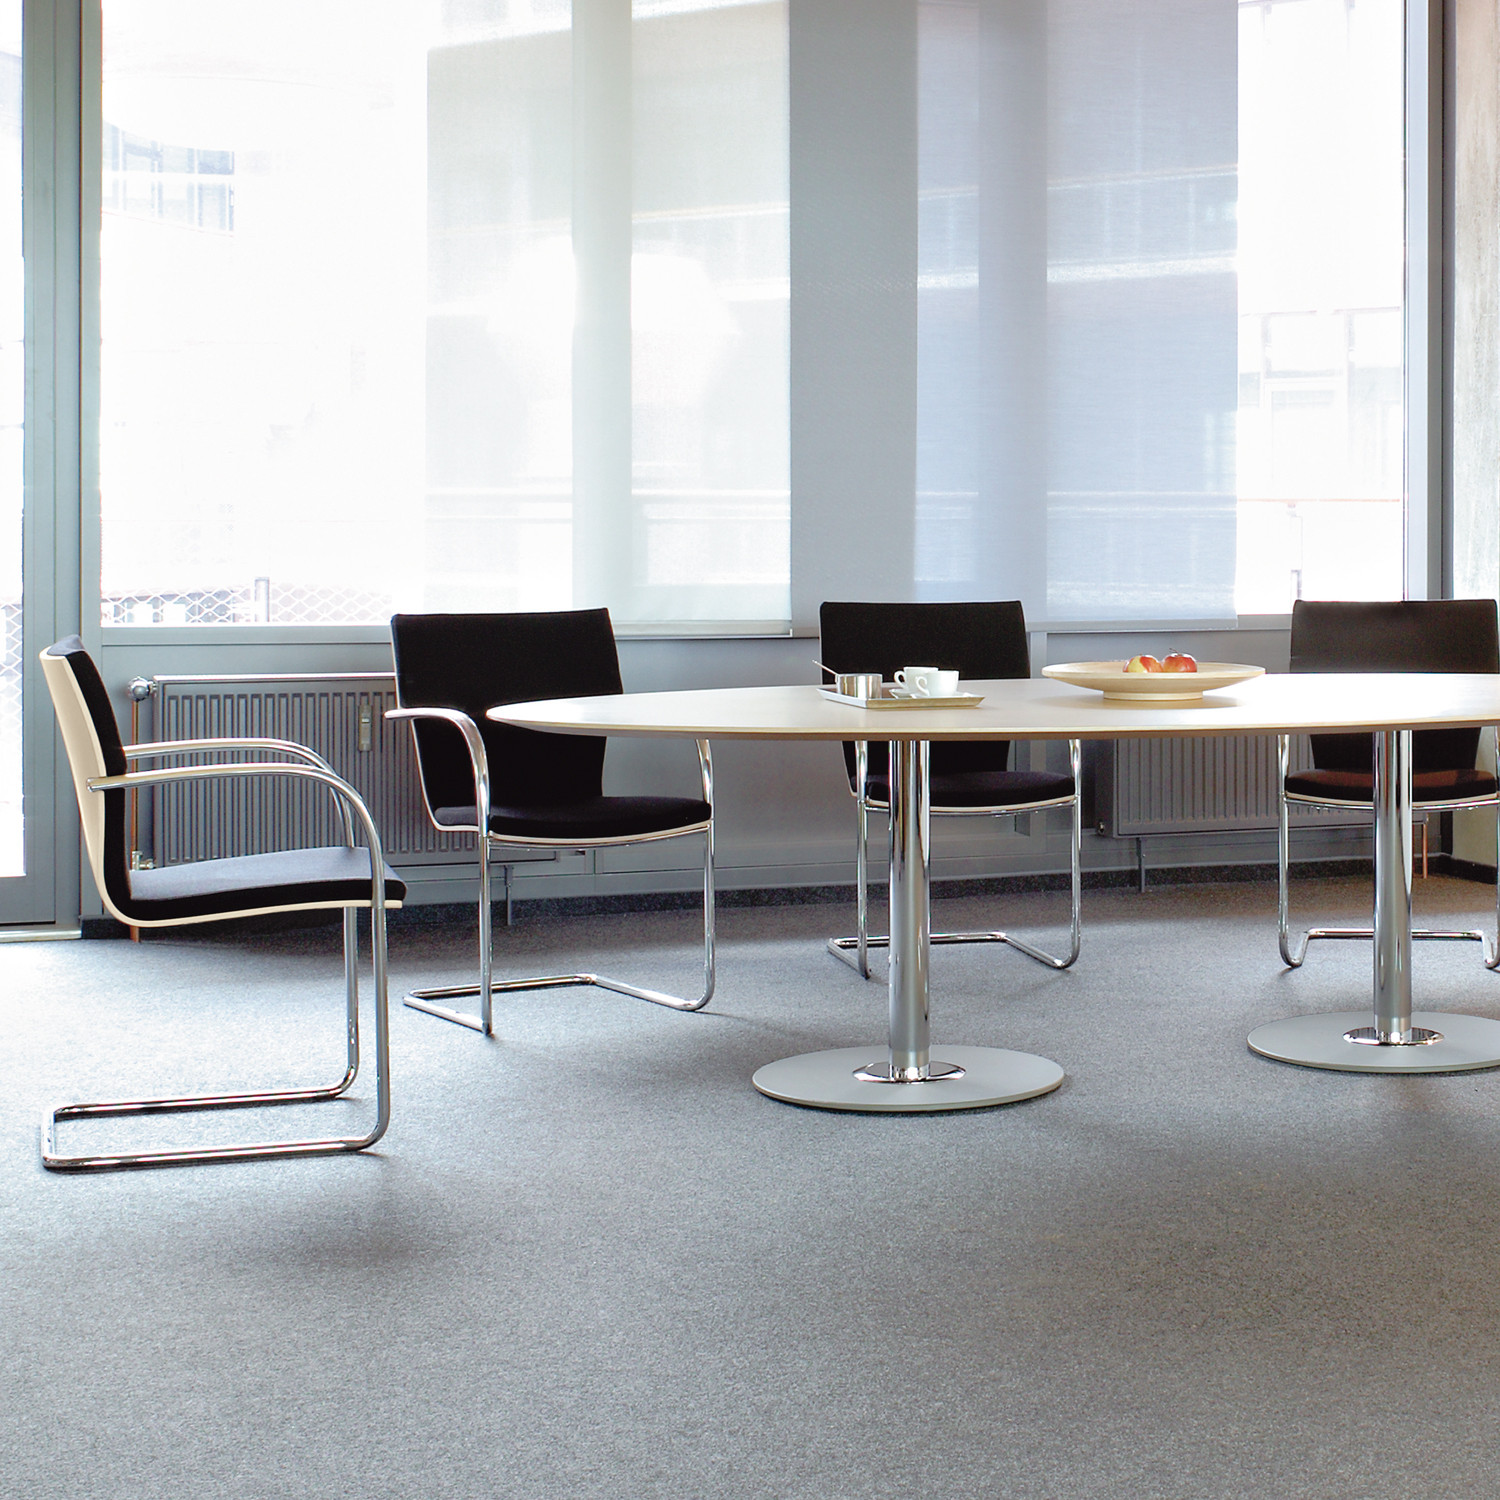 Brunner Sereno Chairs